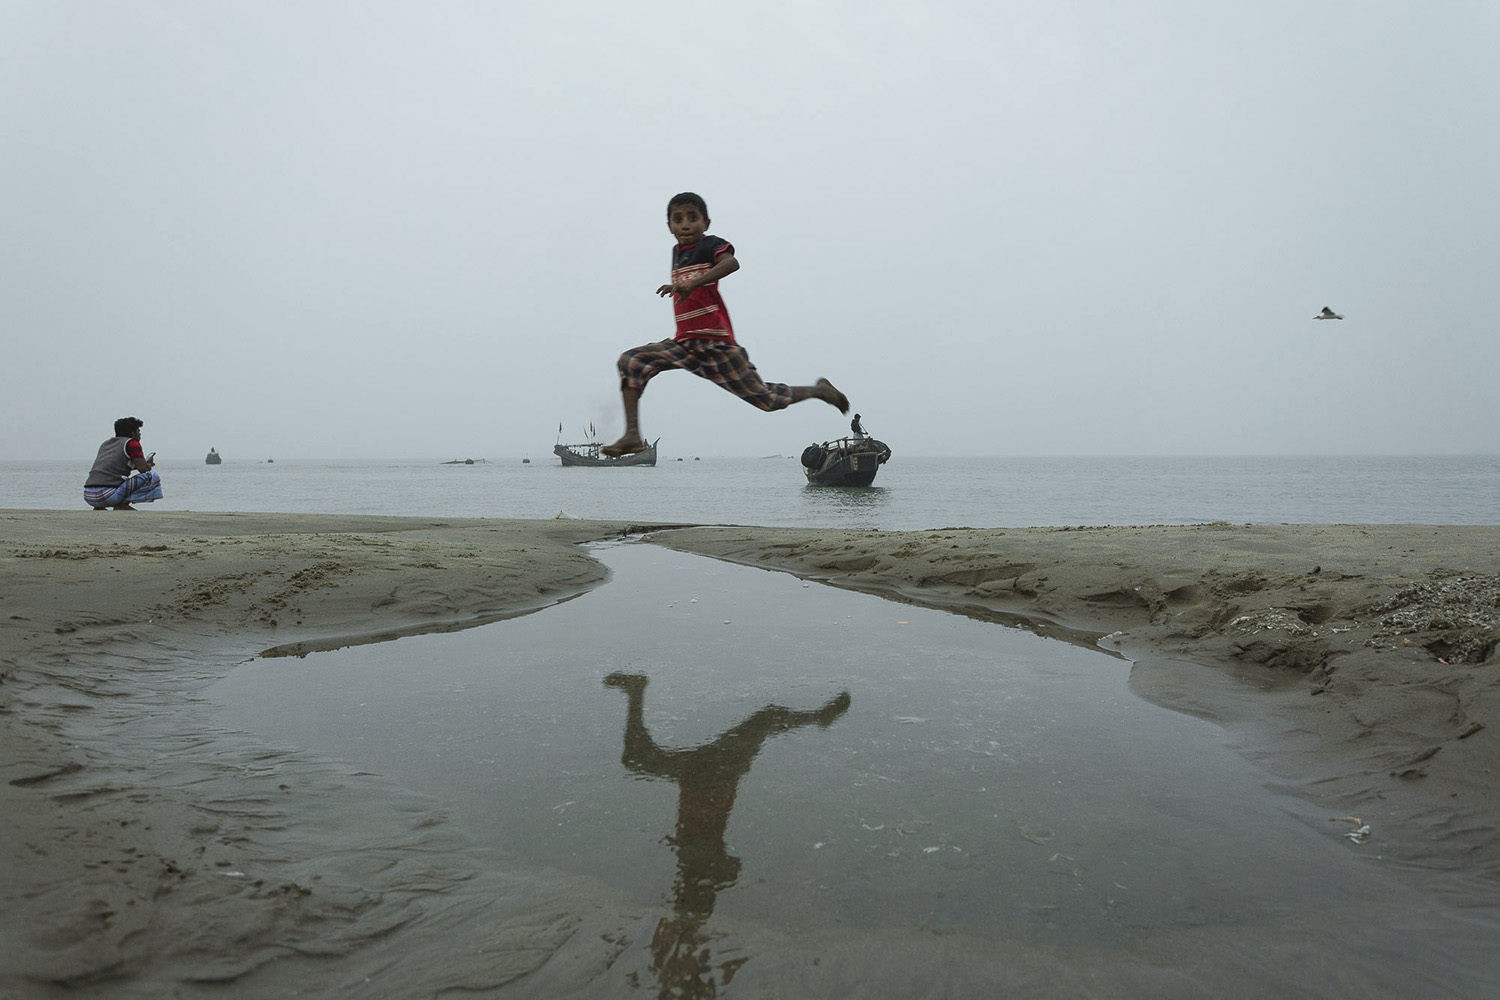 A child leaping over puddles in the sand at  Bay of Bengal, Cox's Bazar Bangladesh